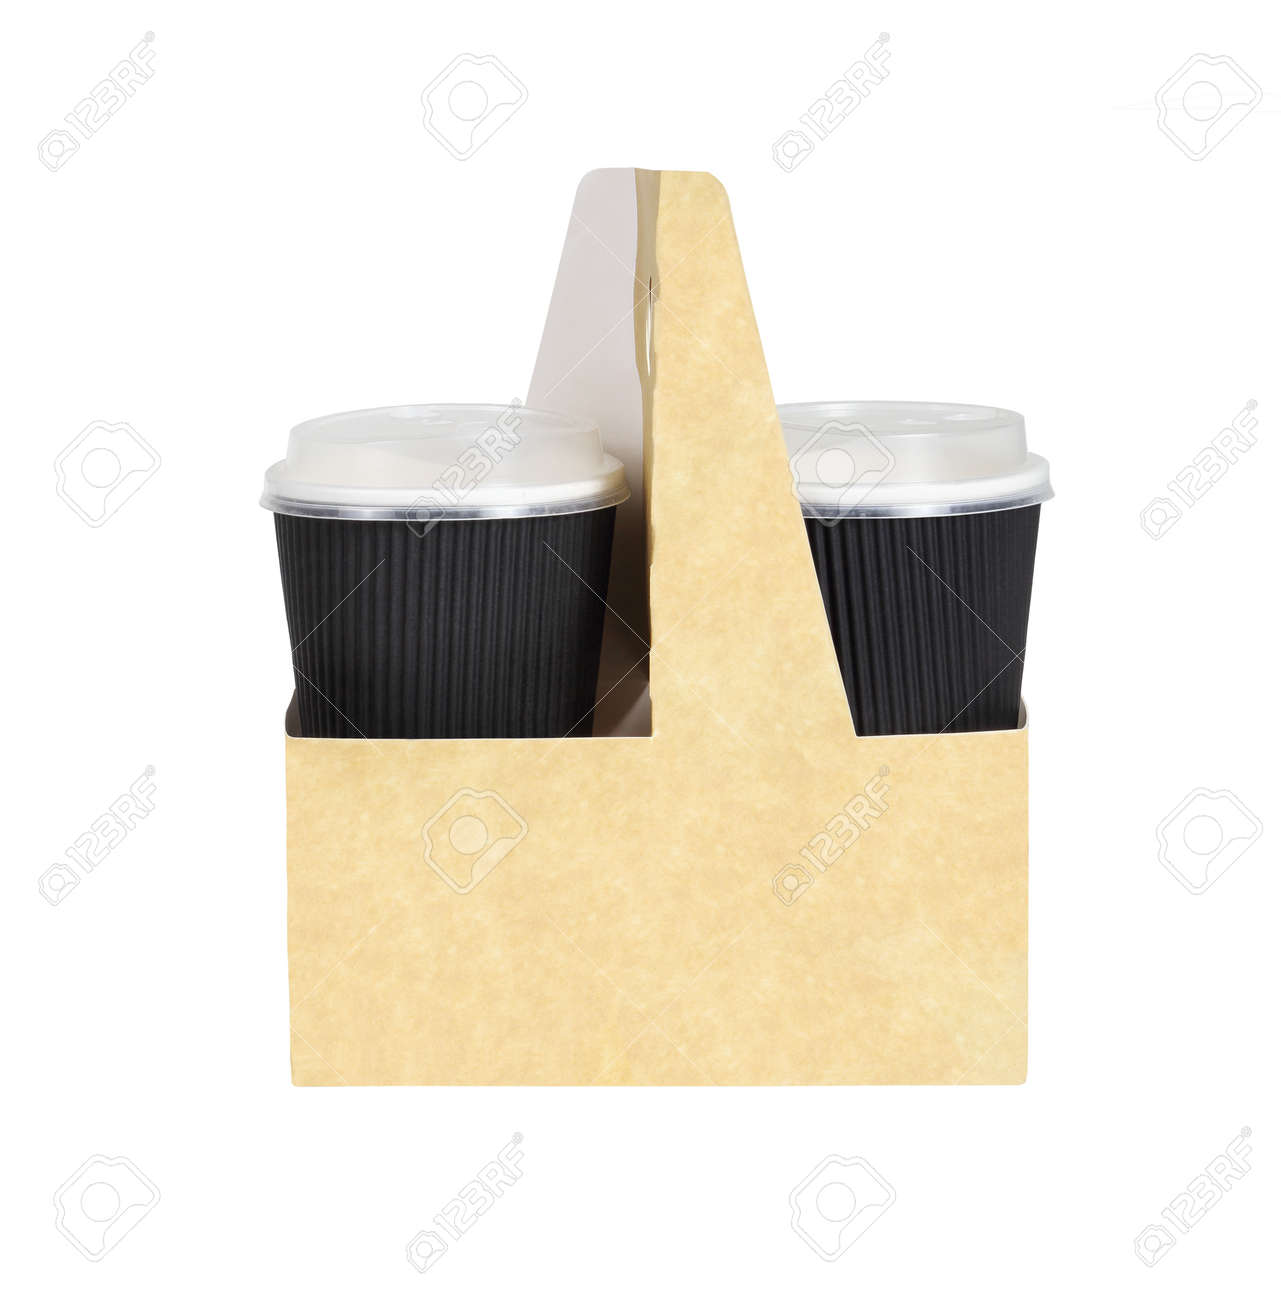 Takeway Drinks in a Holder with Handle on White Background - 144795846